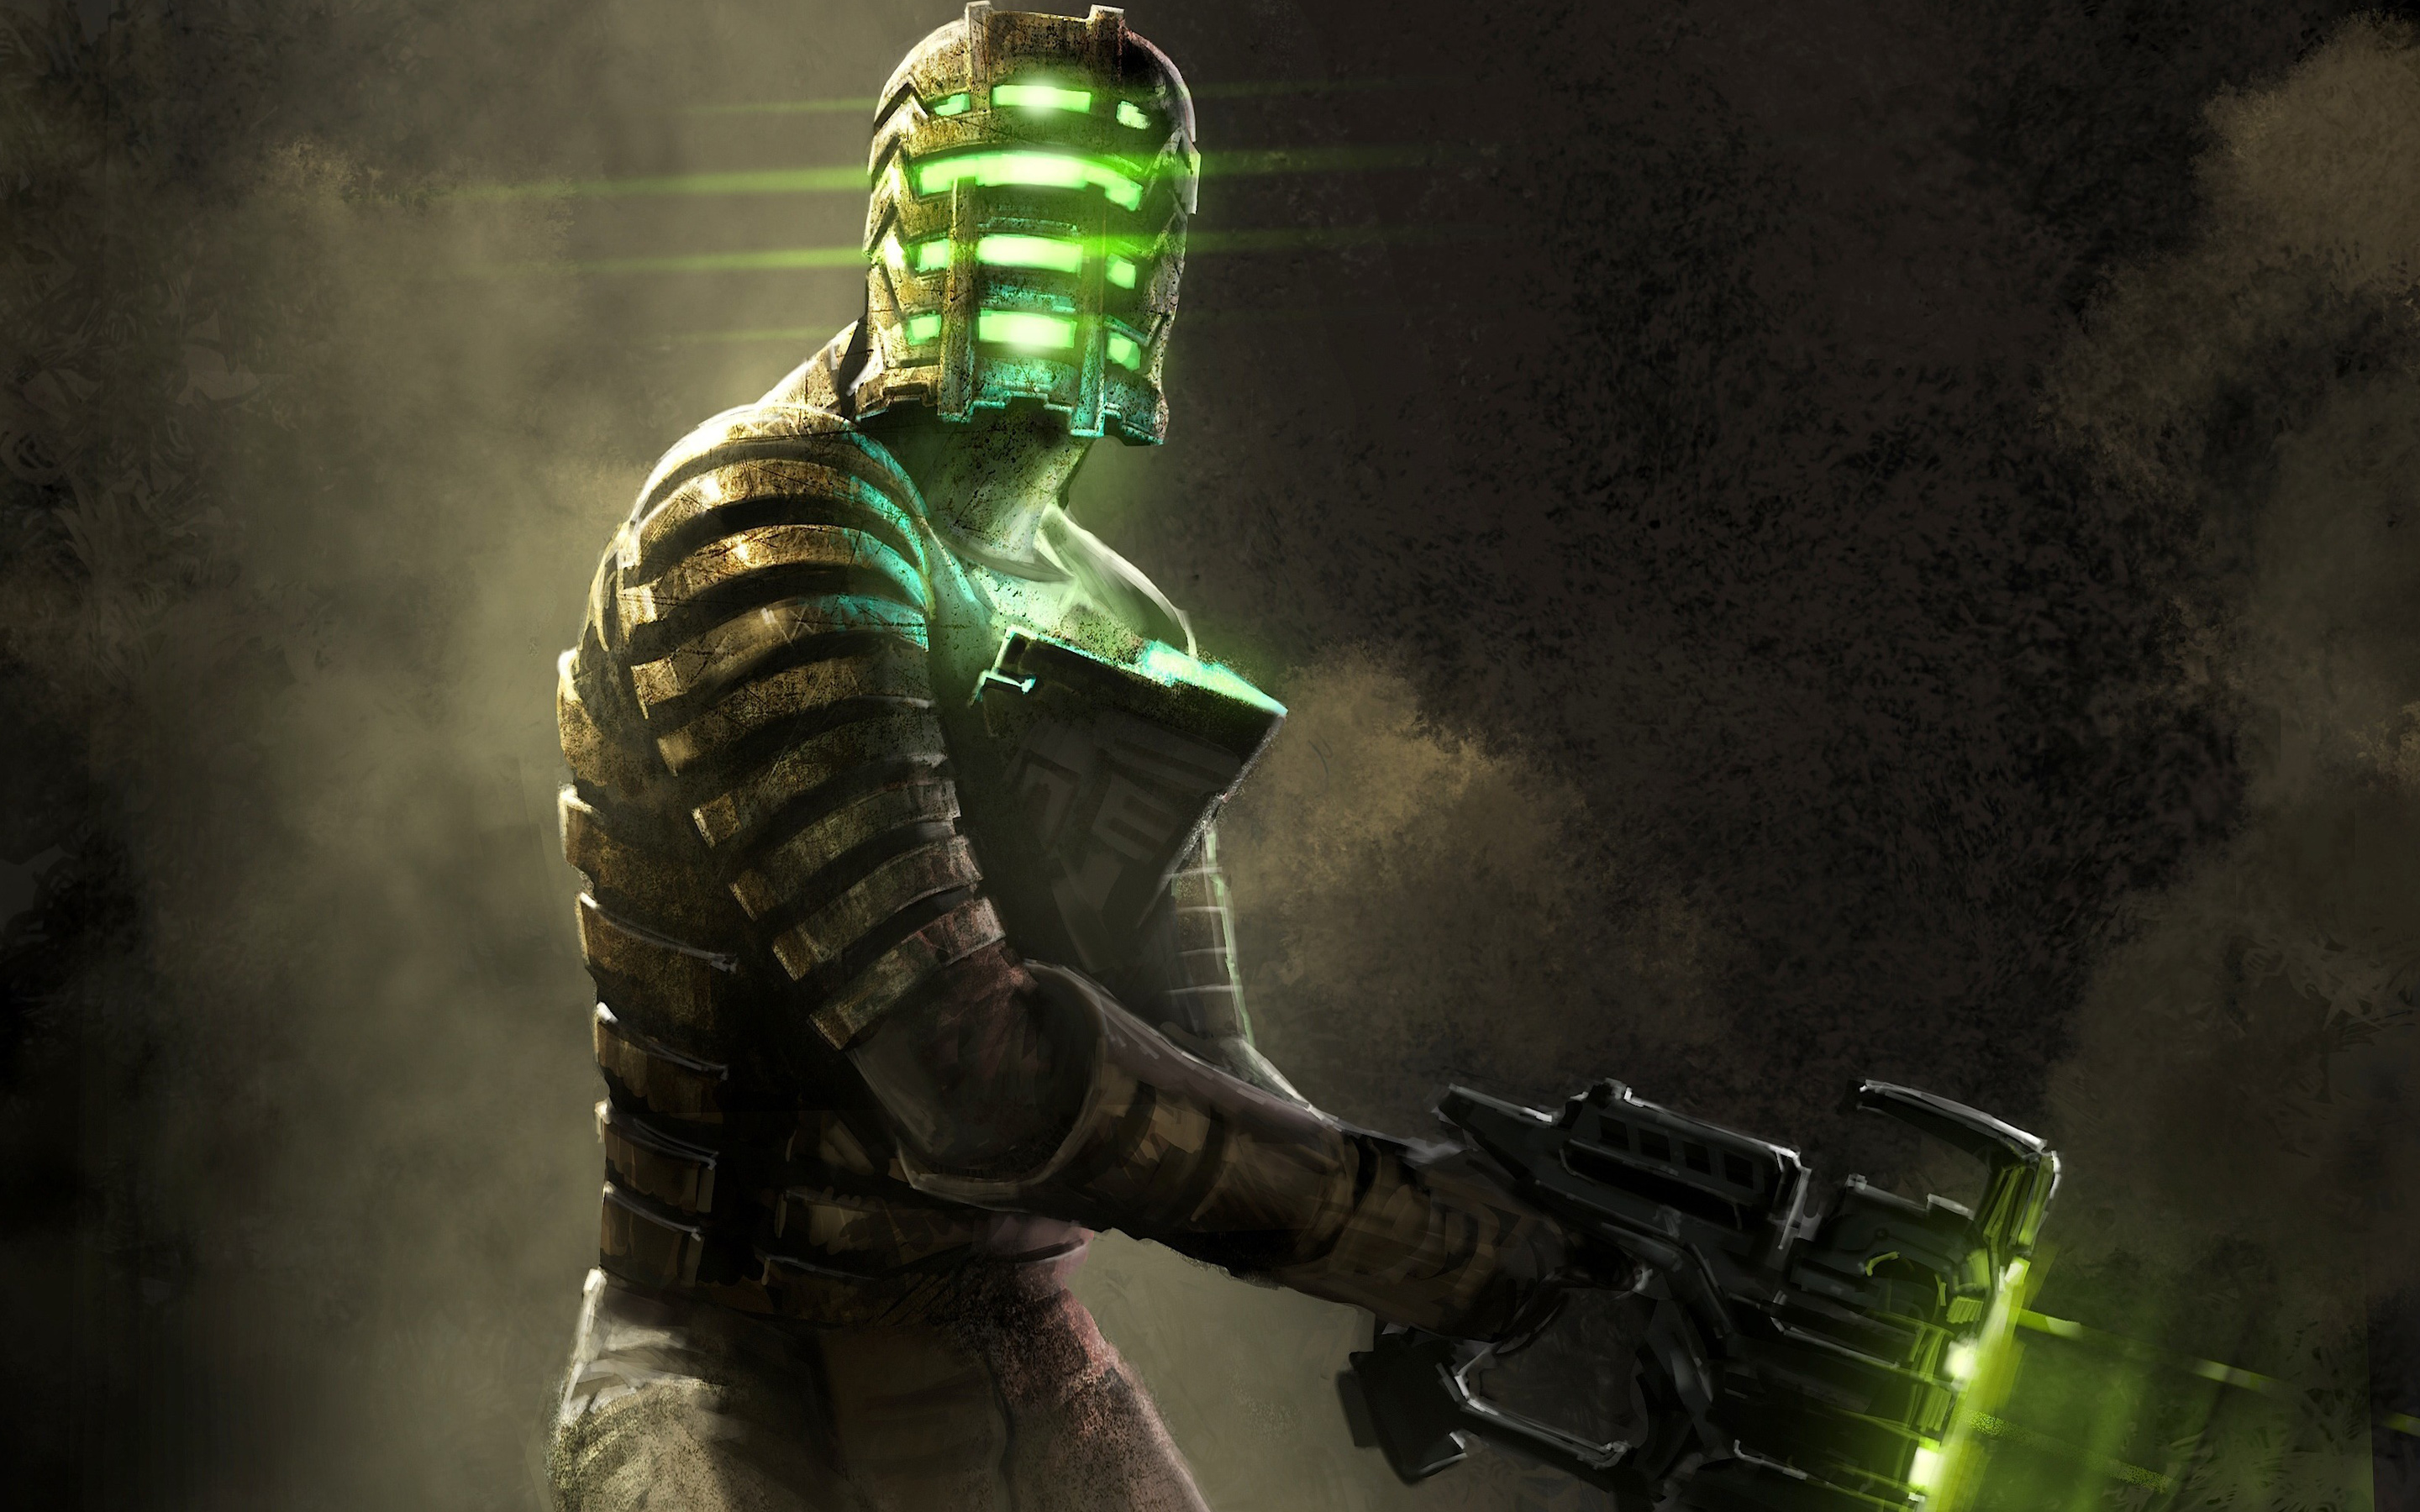 Dead Space Art Work Wallpapers HD Wallpapers 2880x1800